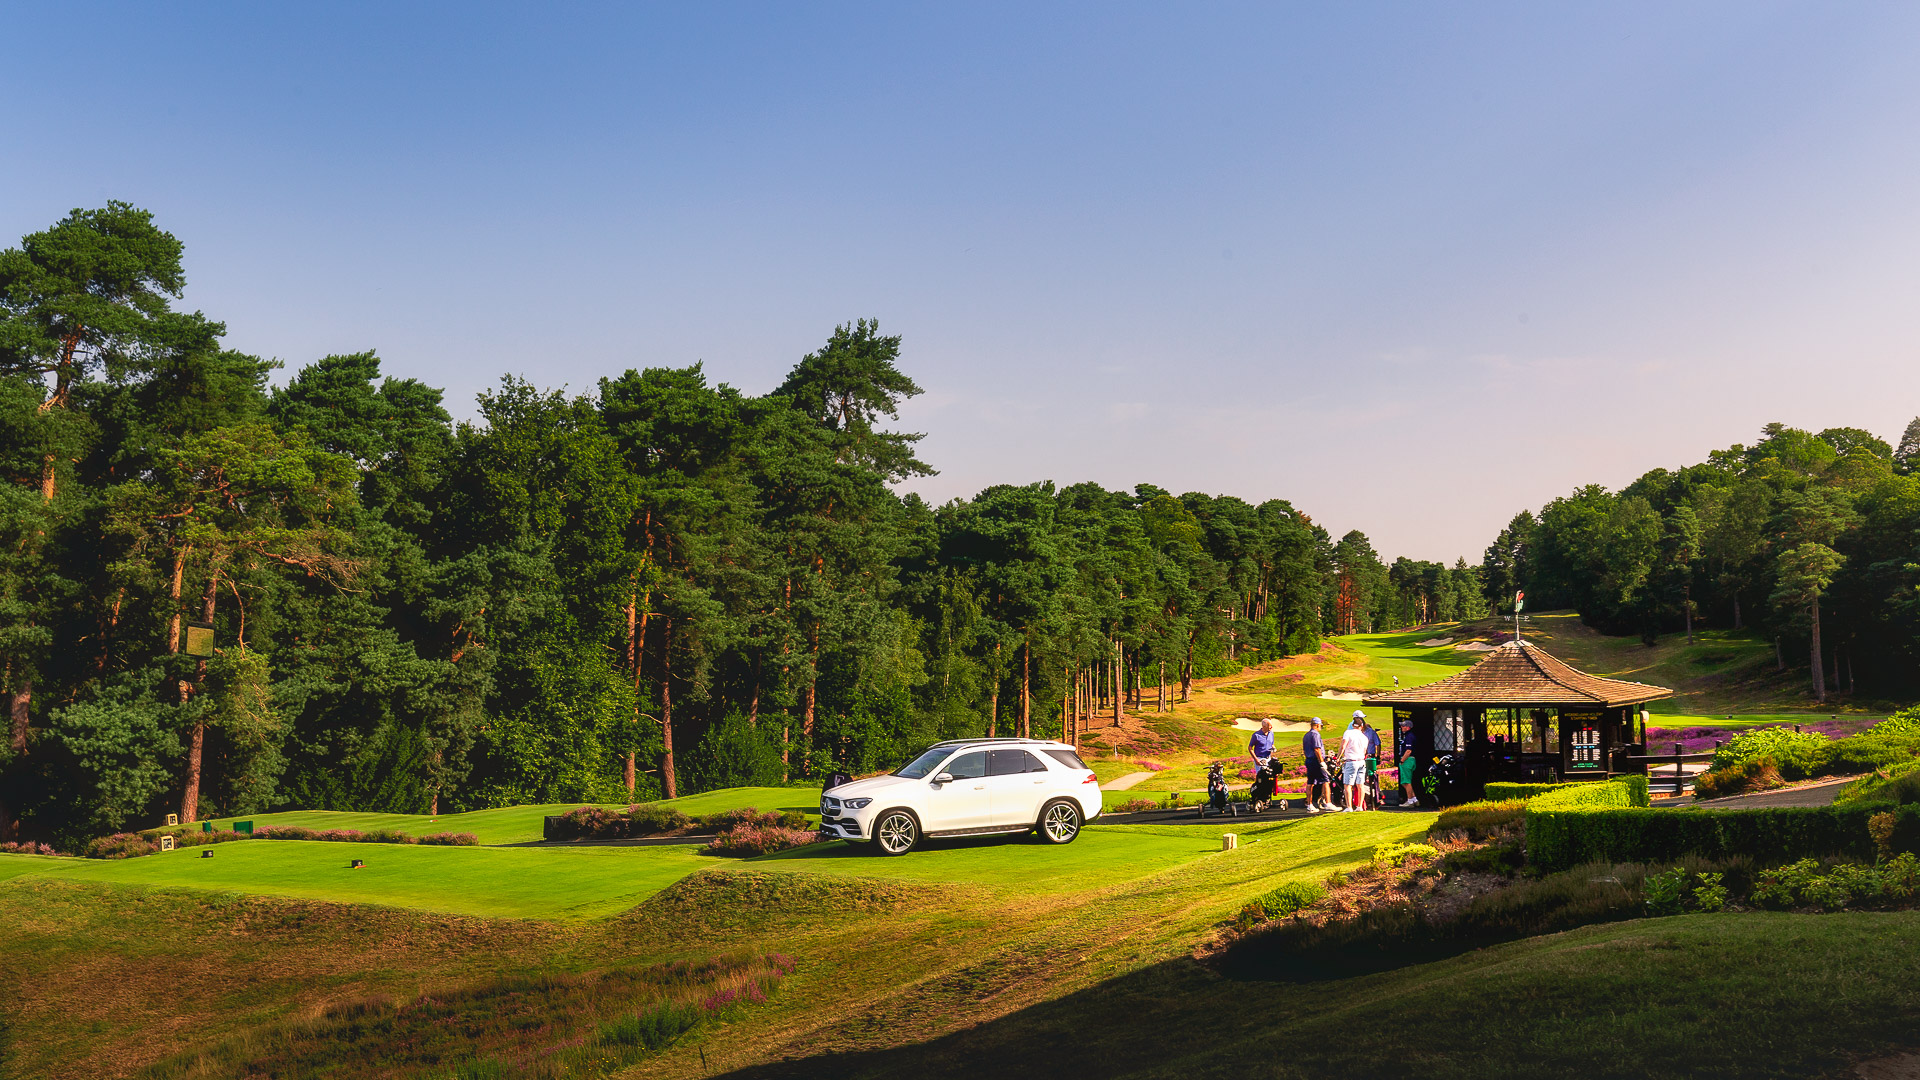 01st-Hole-St-Georges-Hill-Golf-Club-2126-Edit-2